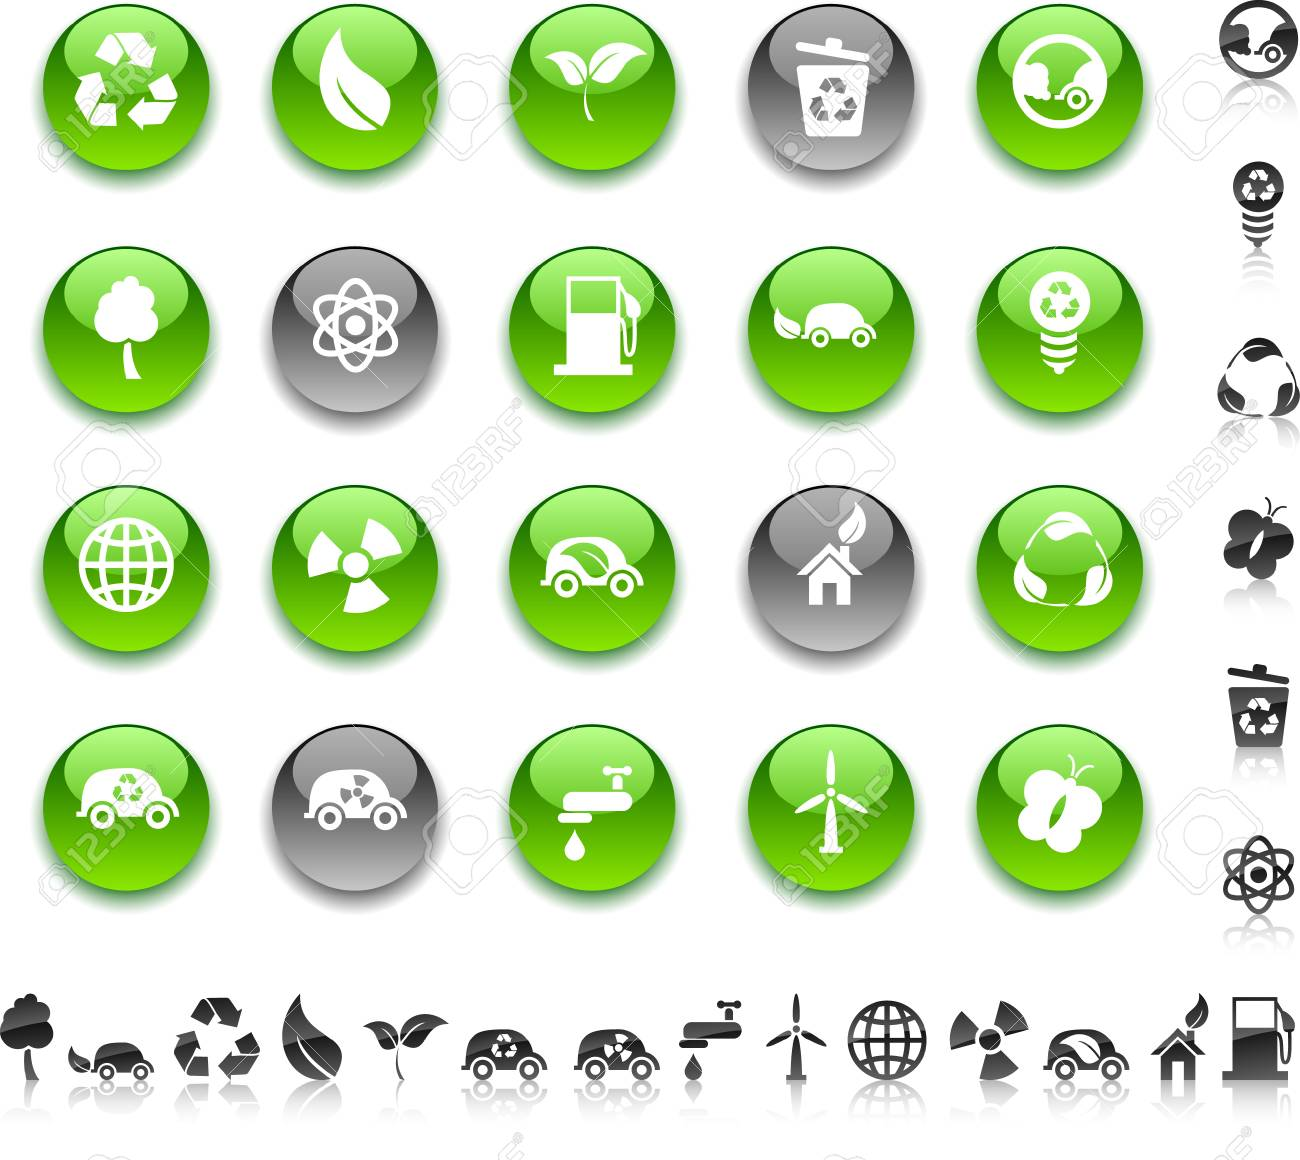 Ecology icon set. Vector illustration. Stock Vector - 5635431